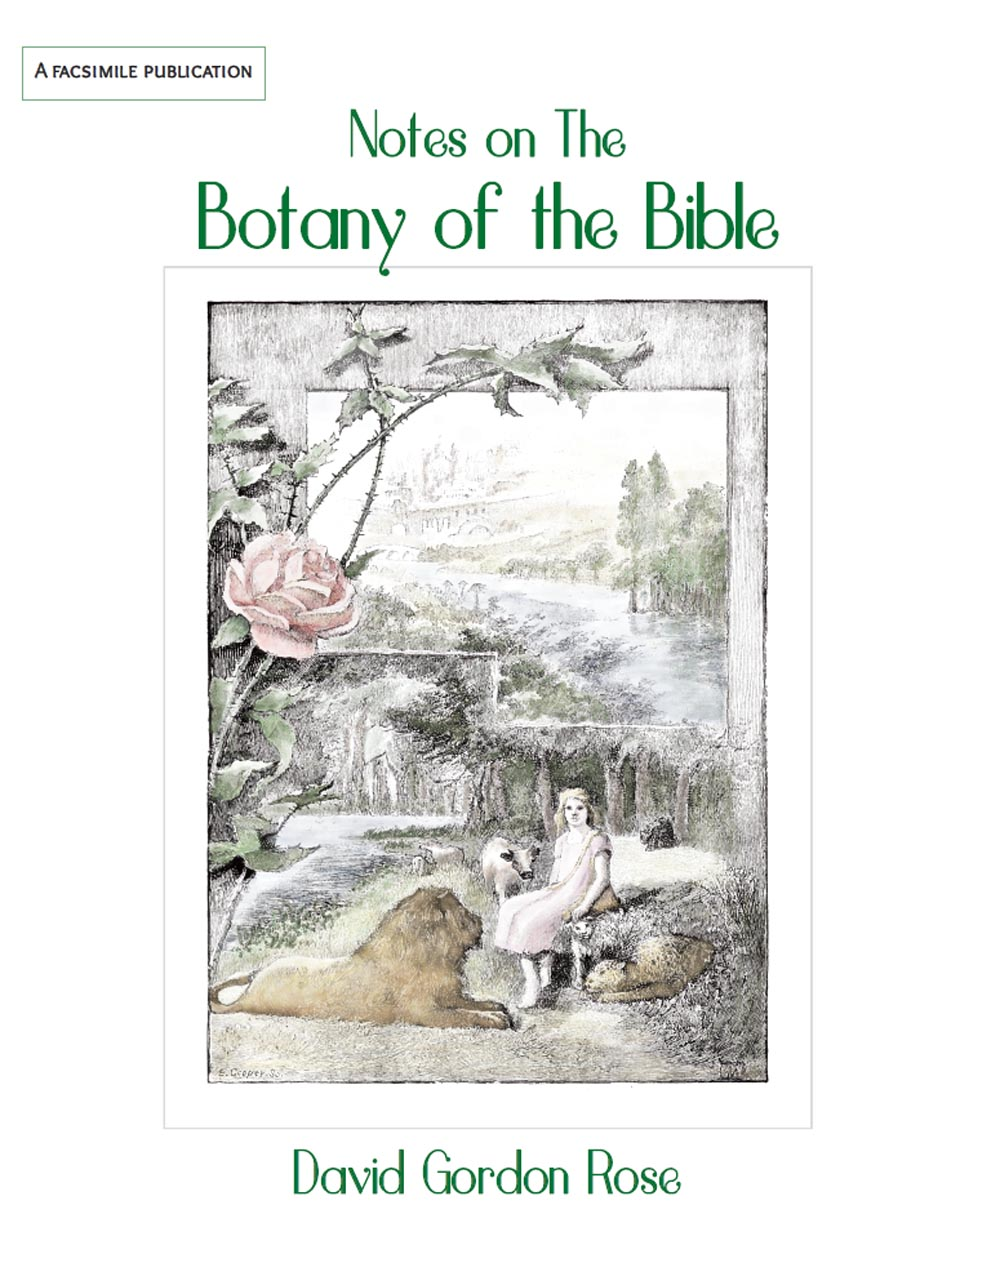 Notes on the Botany of the Bible FRONT COVER